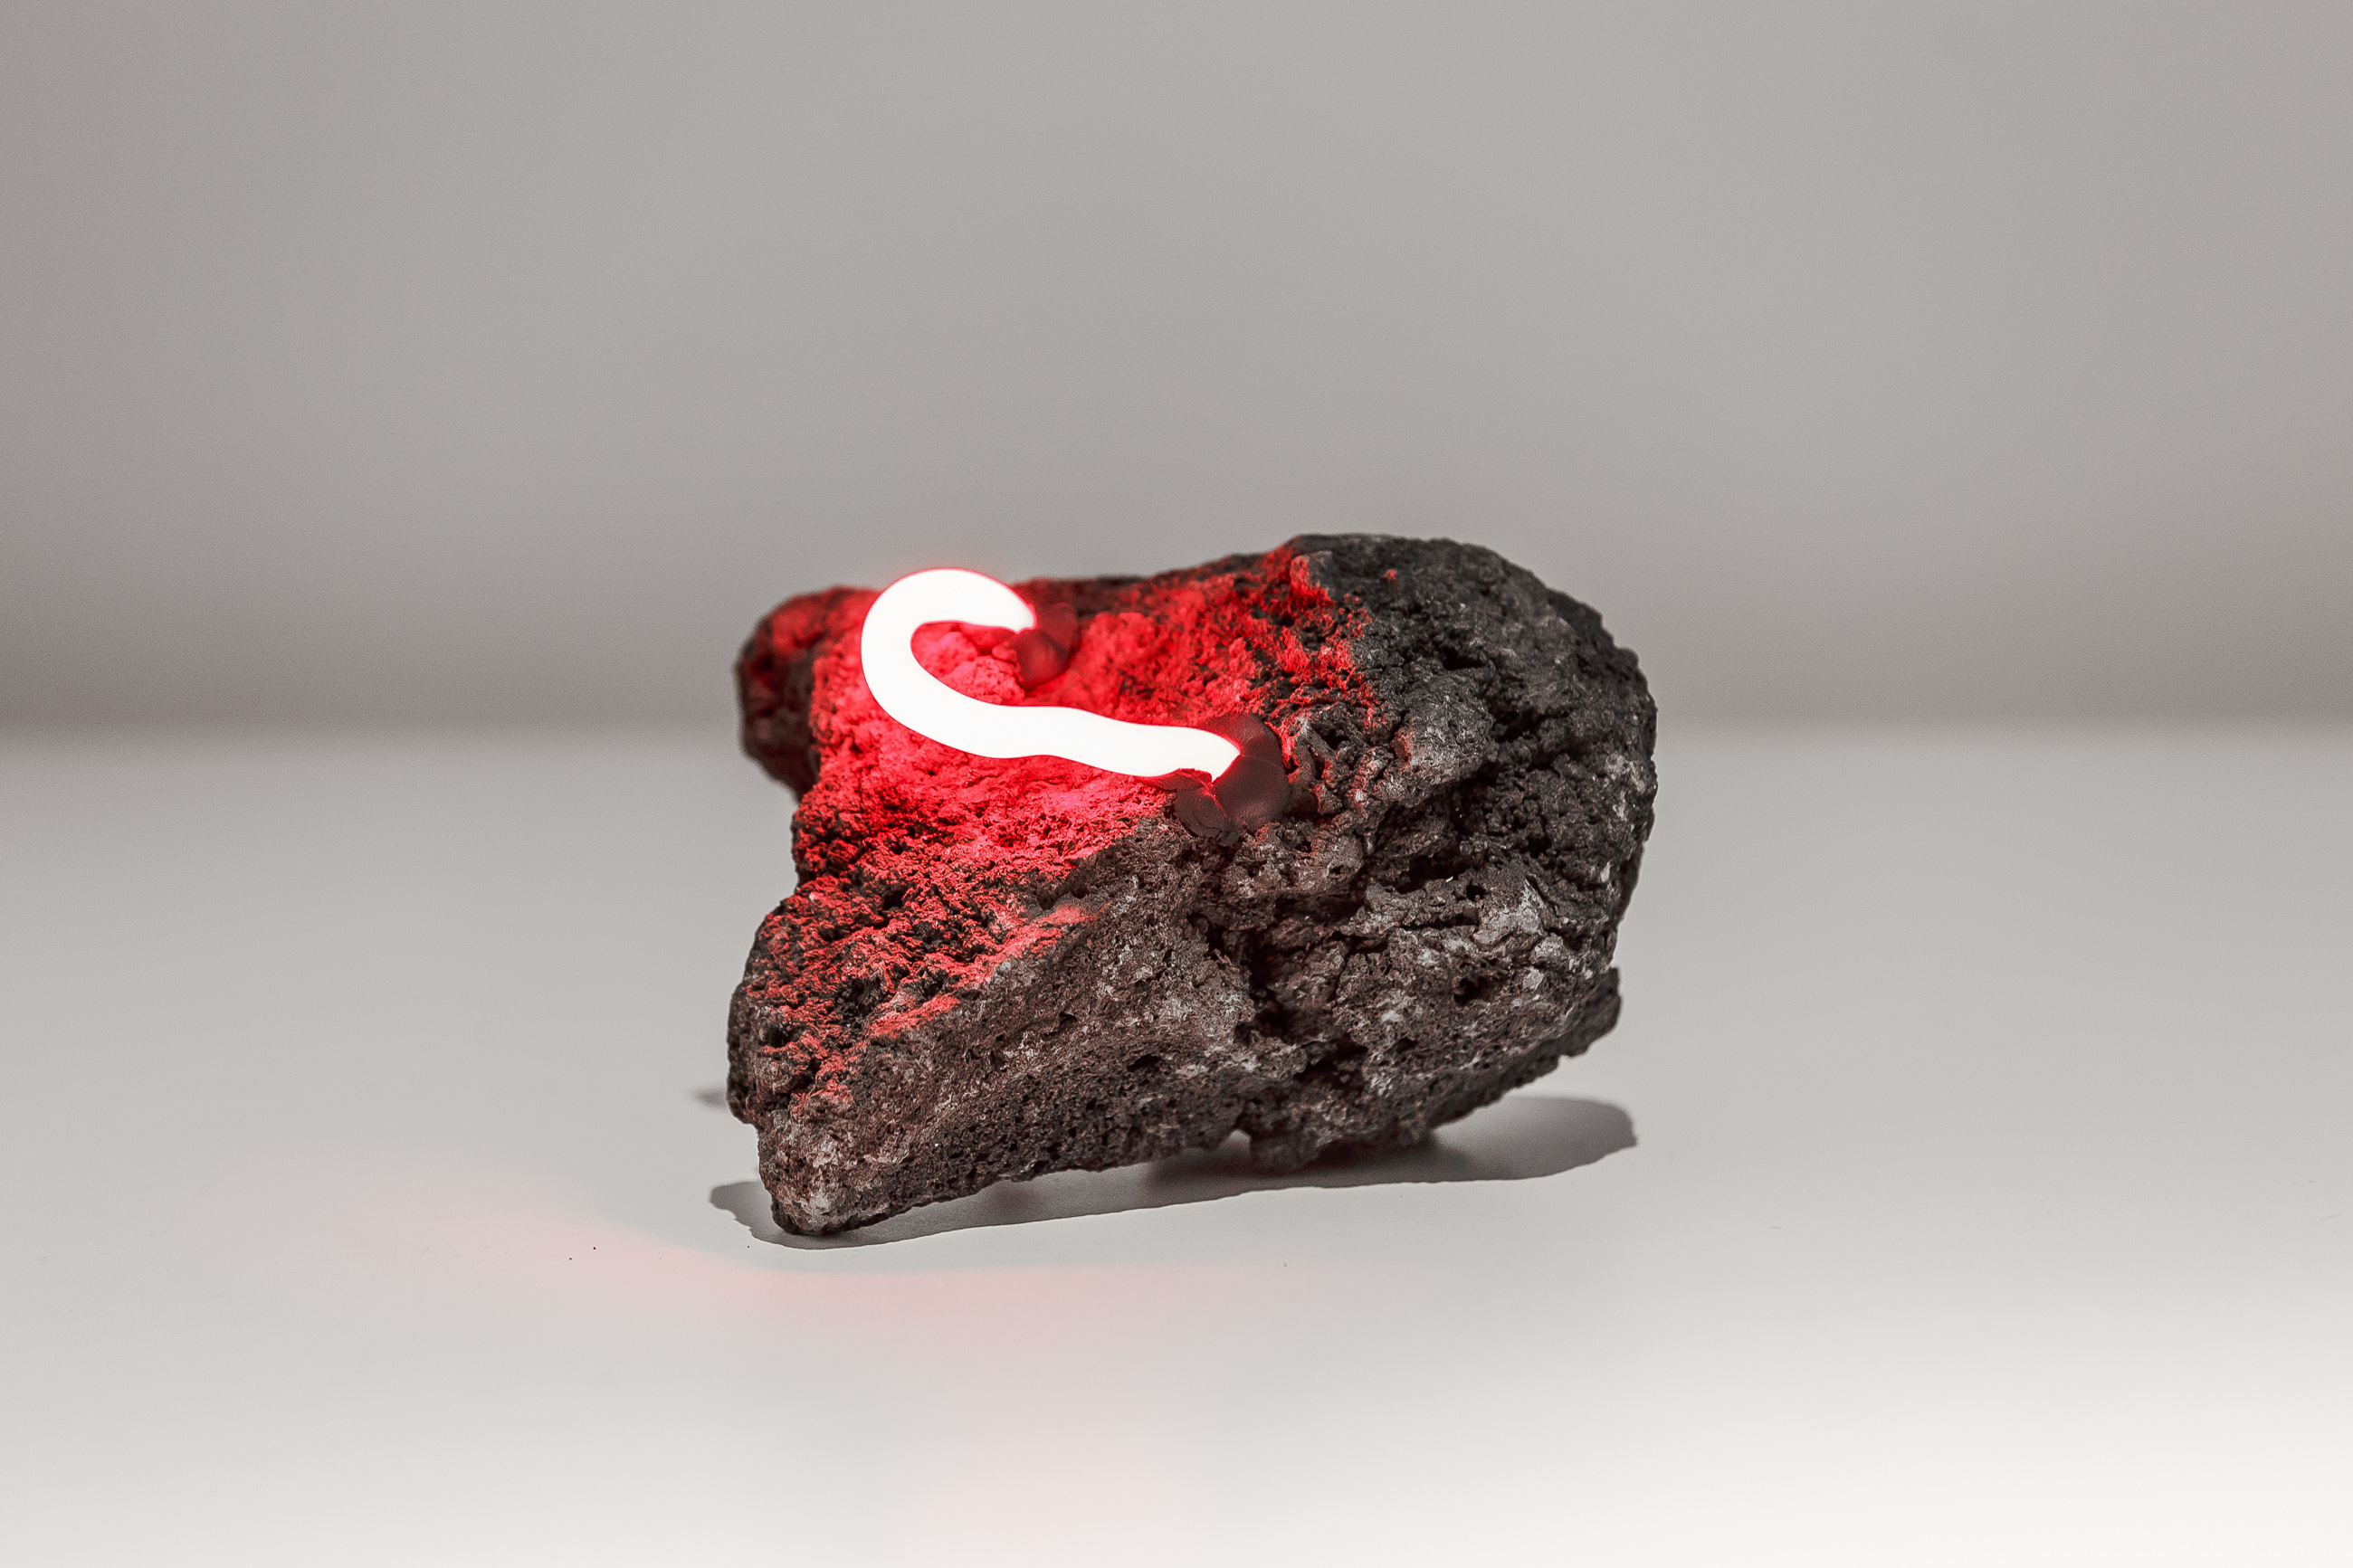 Arthur Duff, Endings, 2015, lava stone and red neon, variable measures